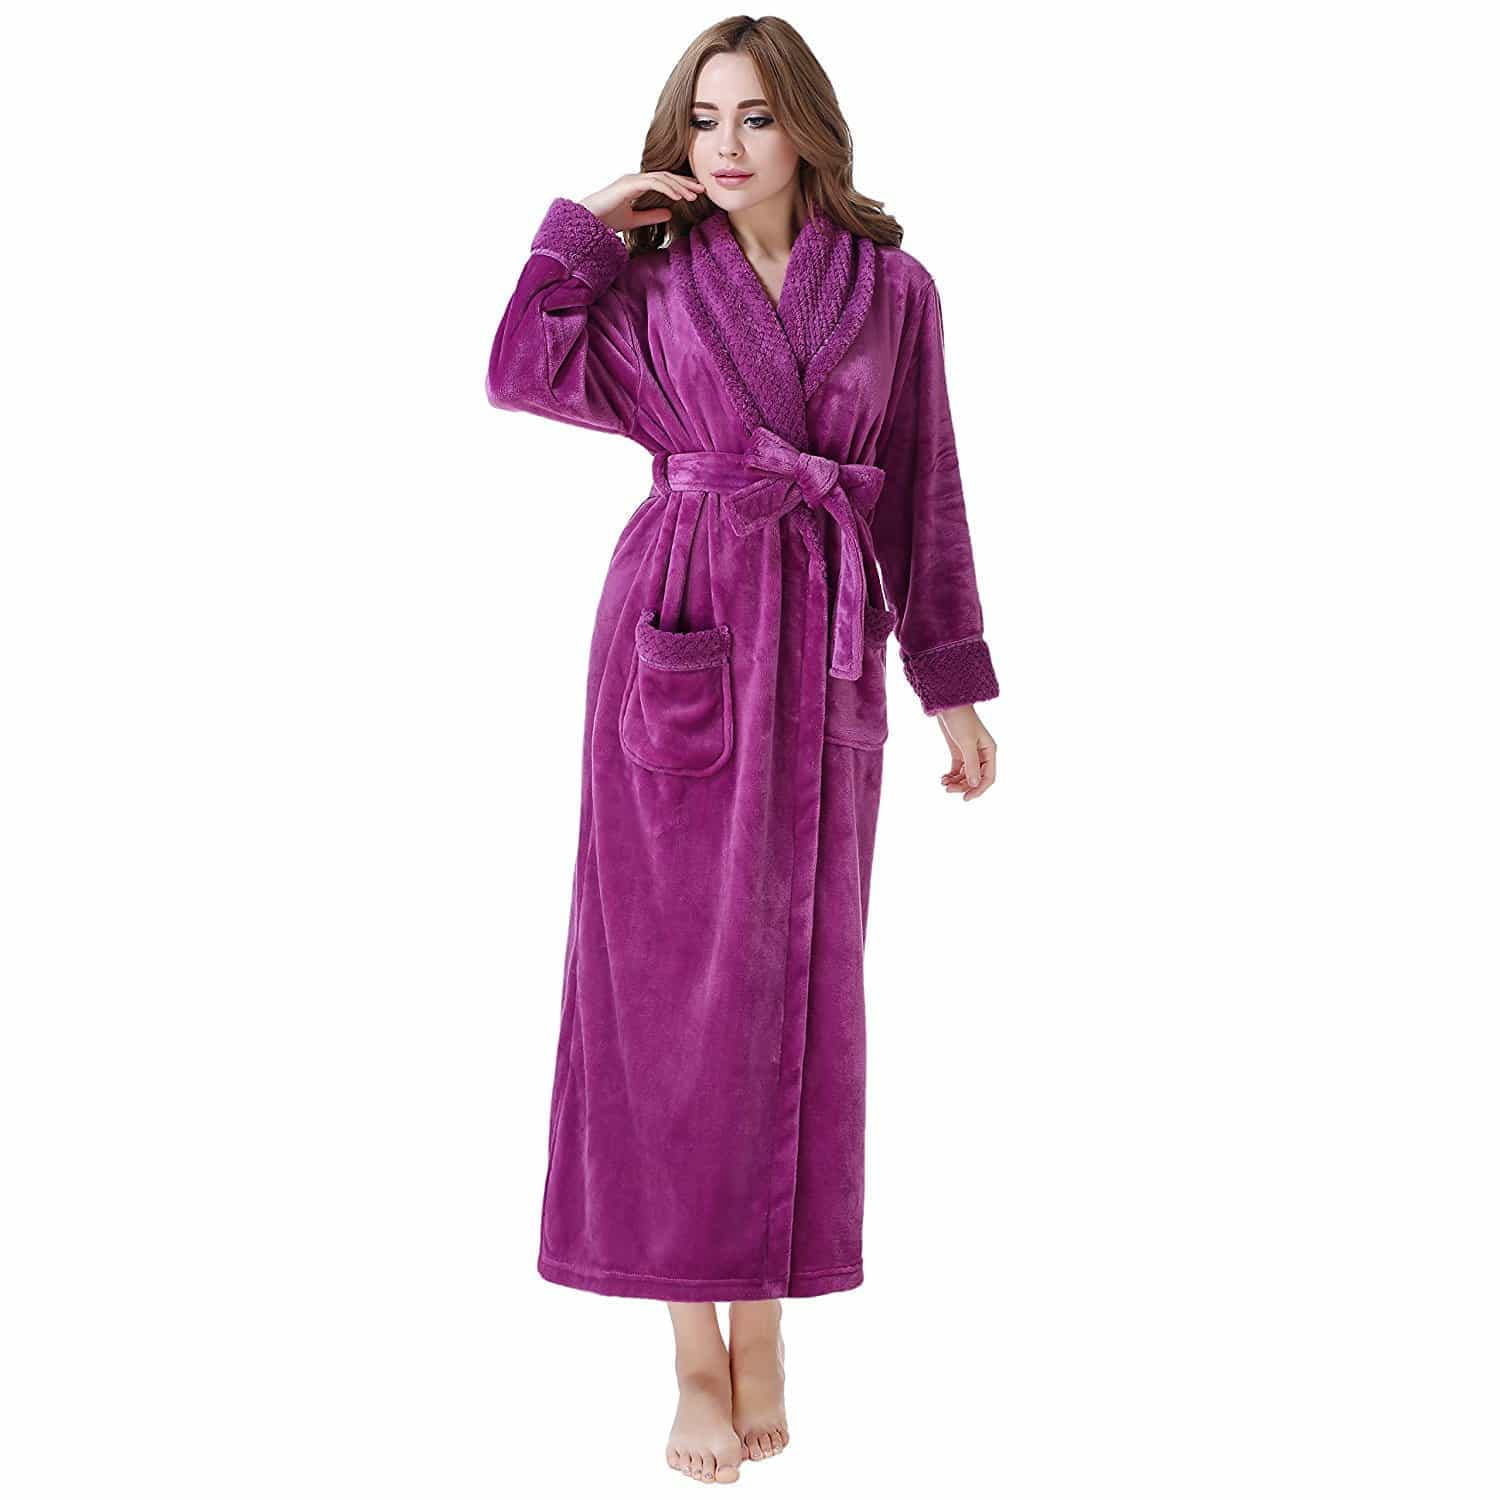 who makes the best bathrobes